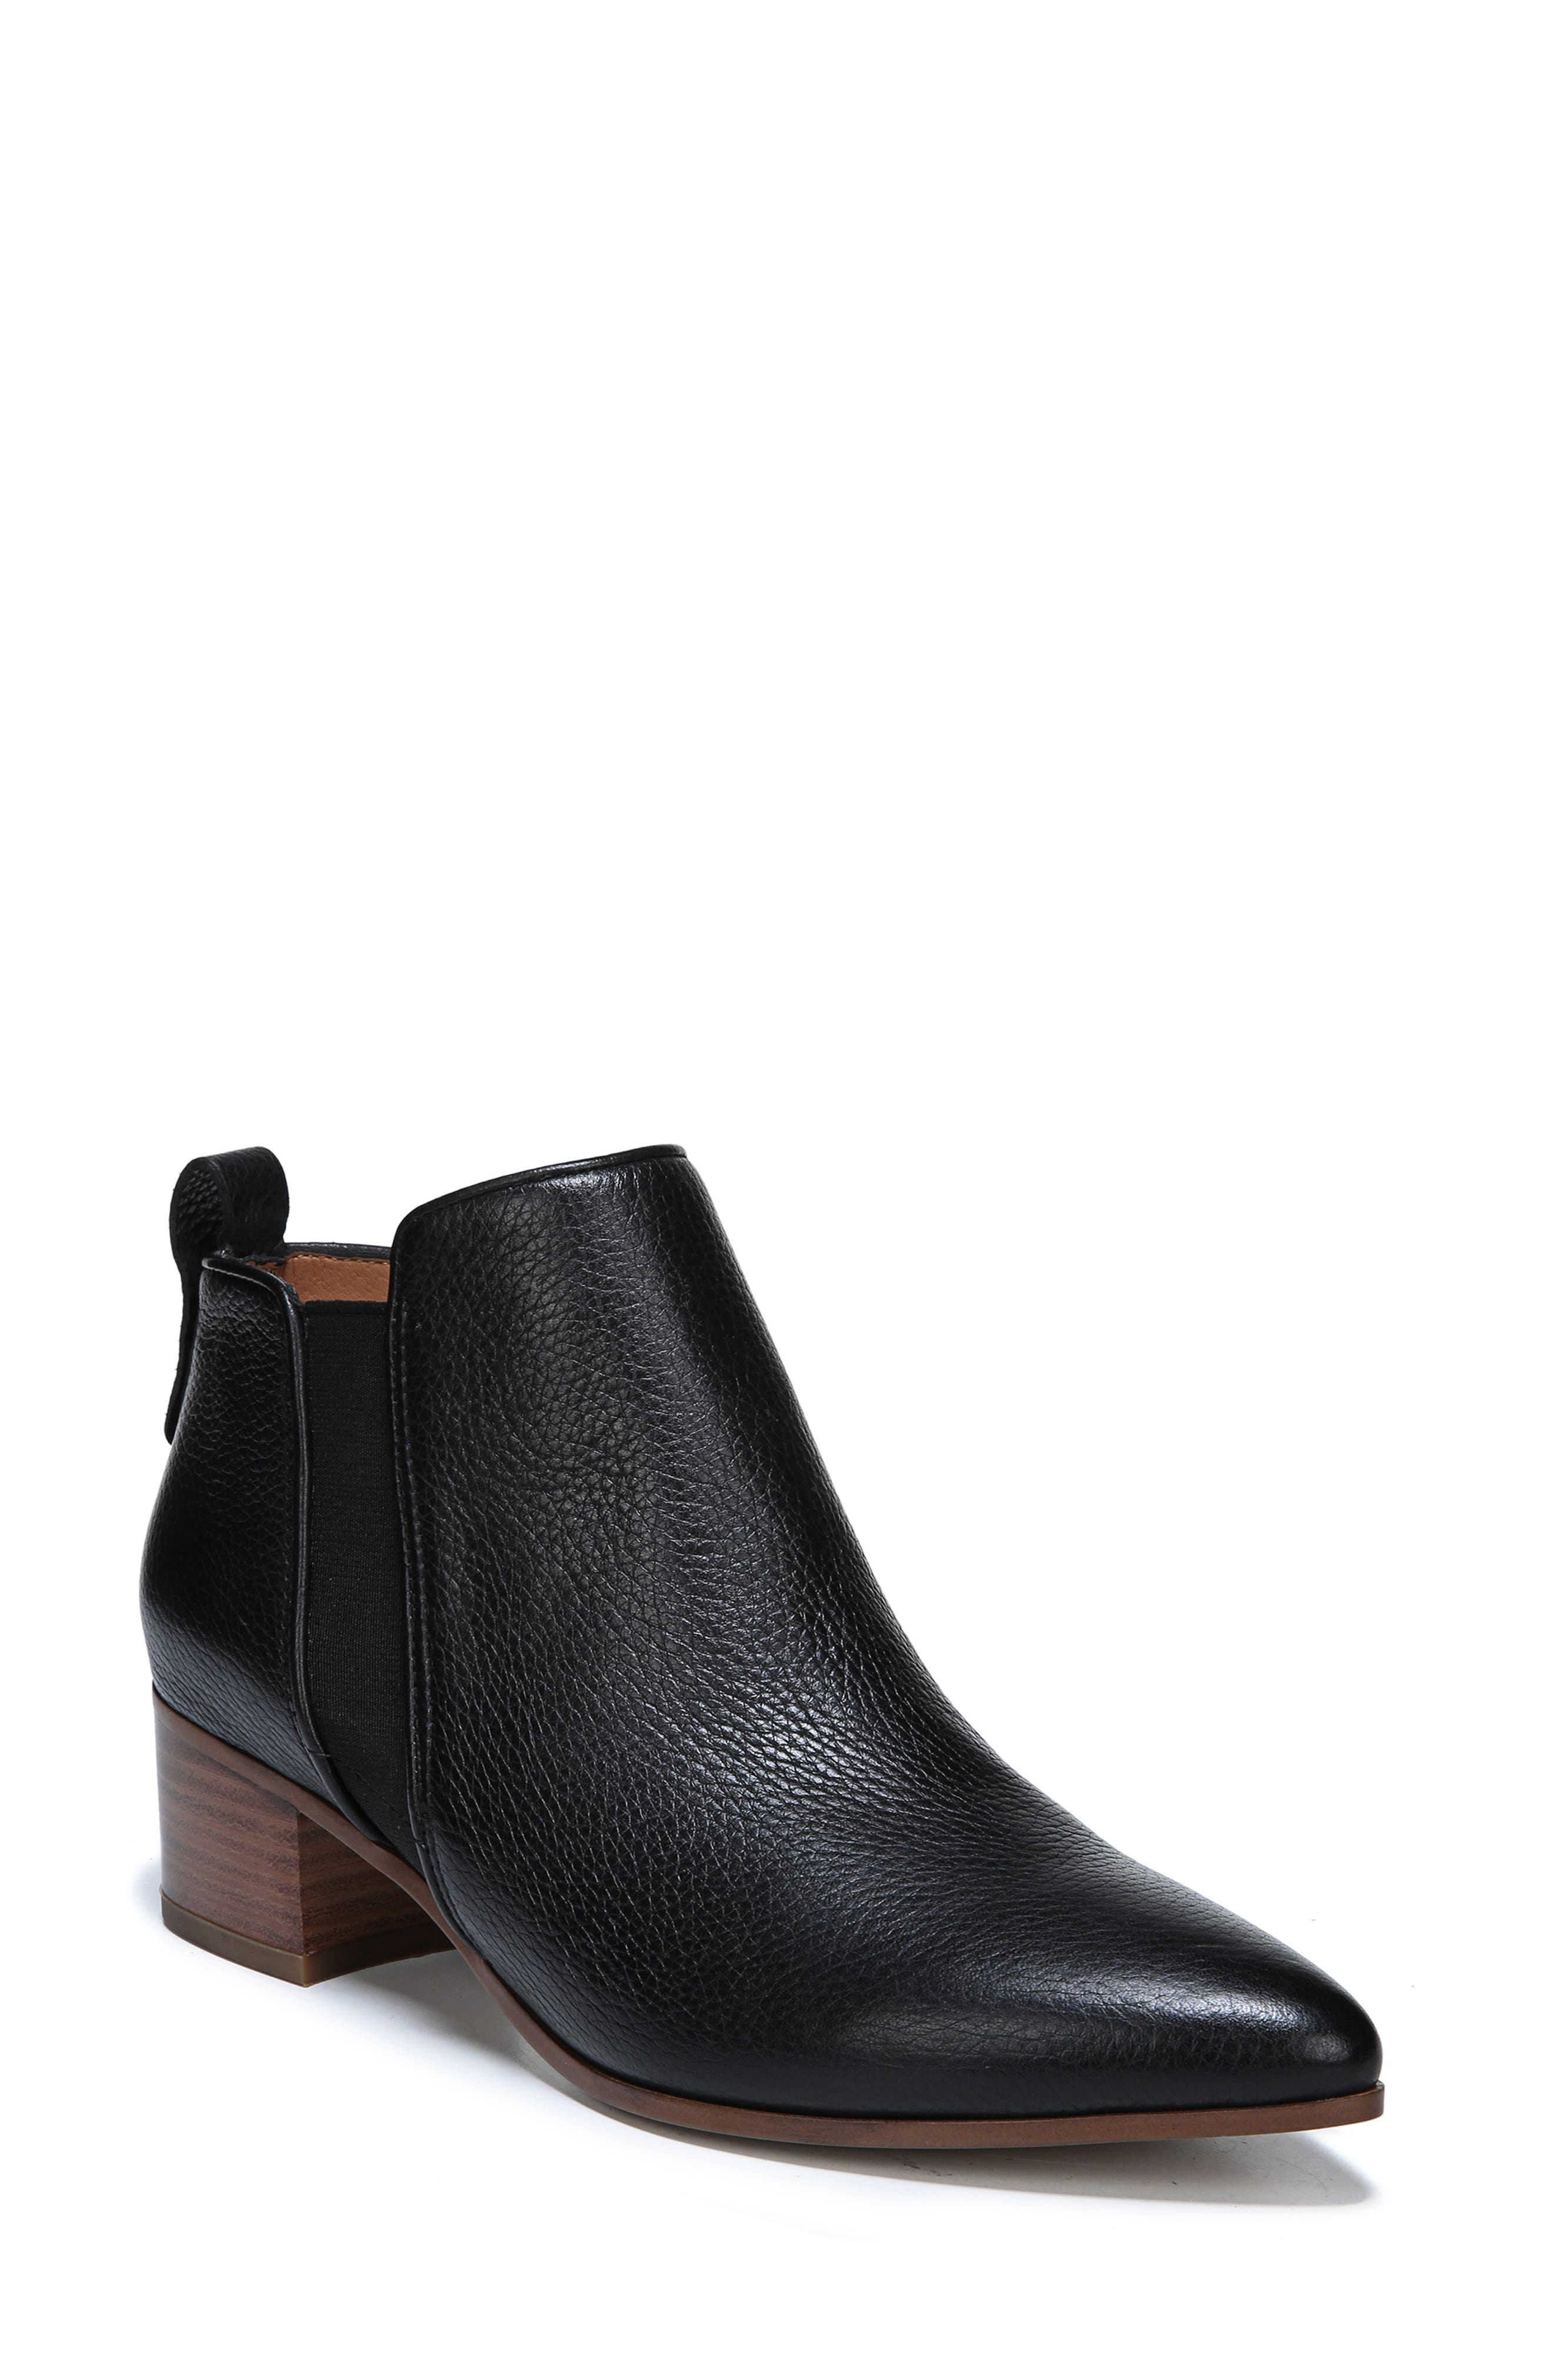 Jollie Bootie,                         Main,                         color, BLACK LEATHER